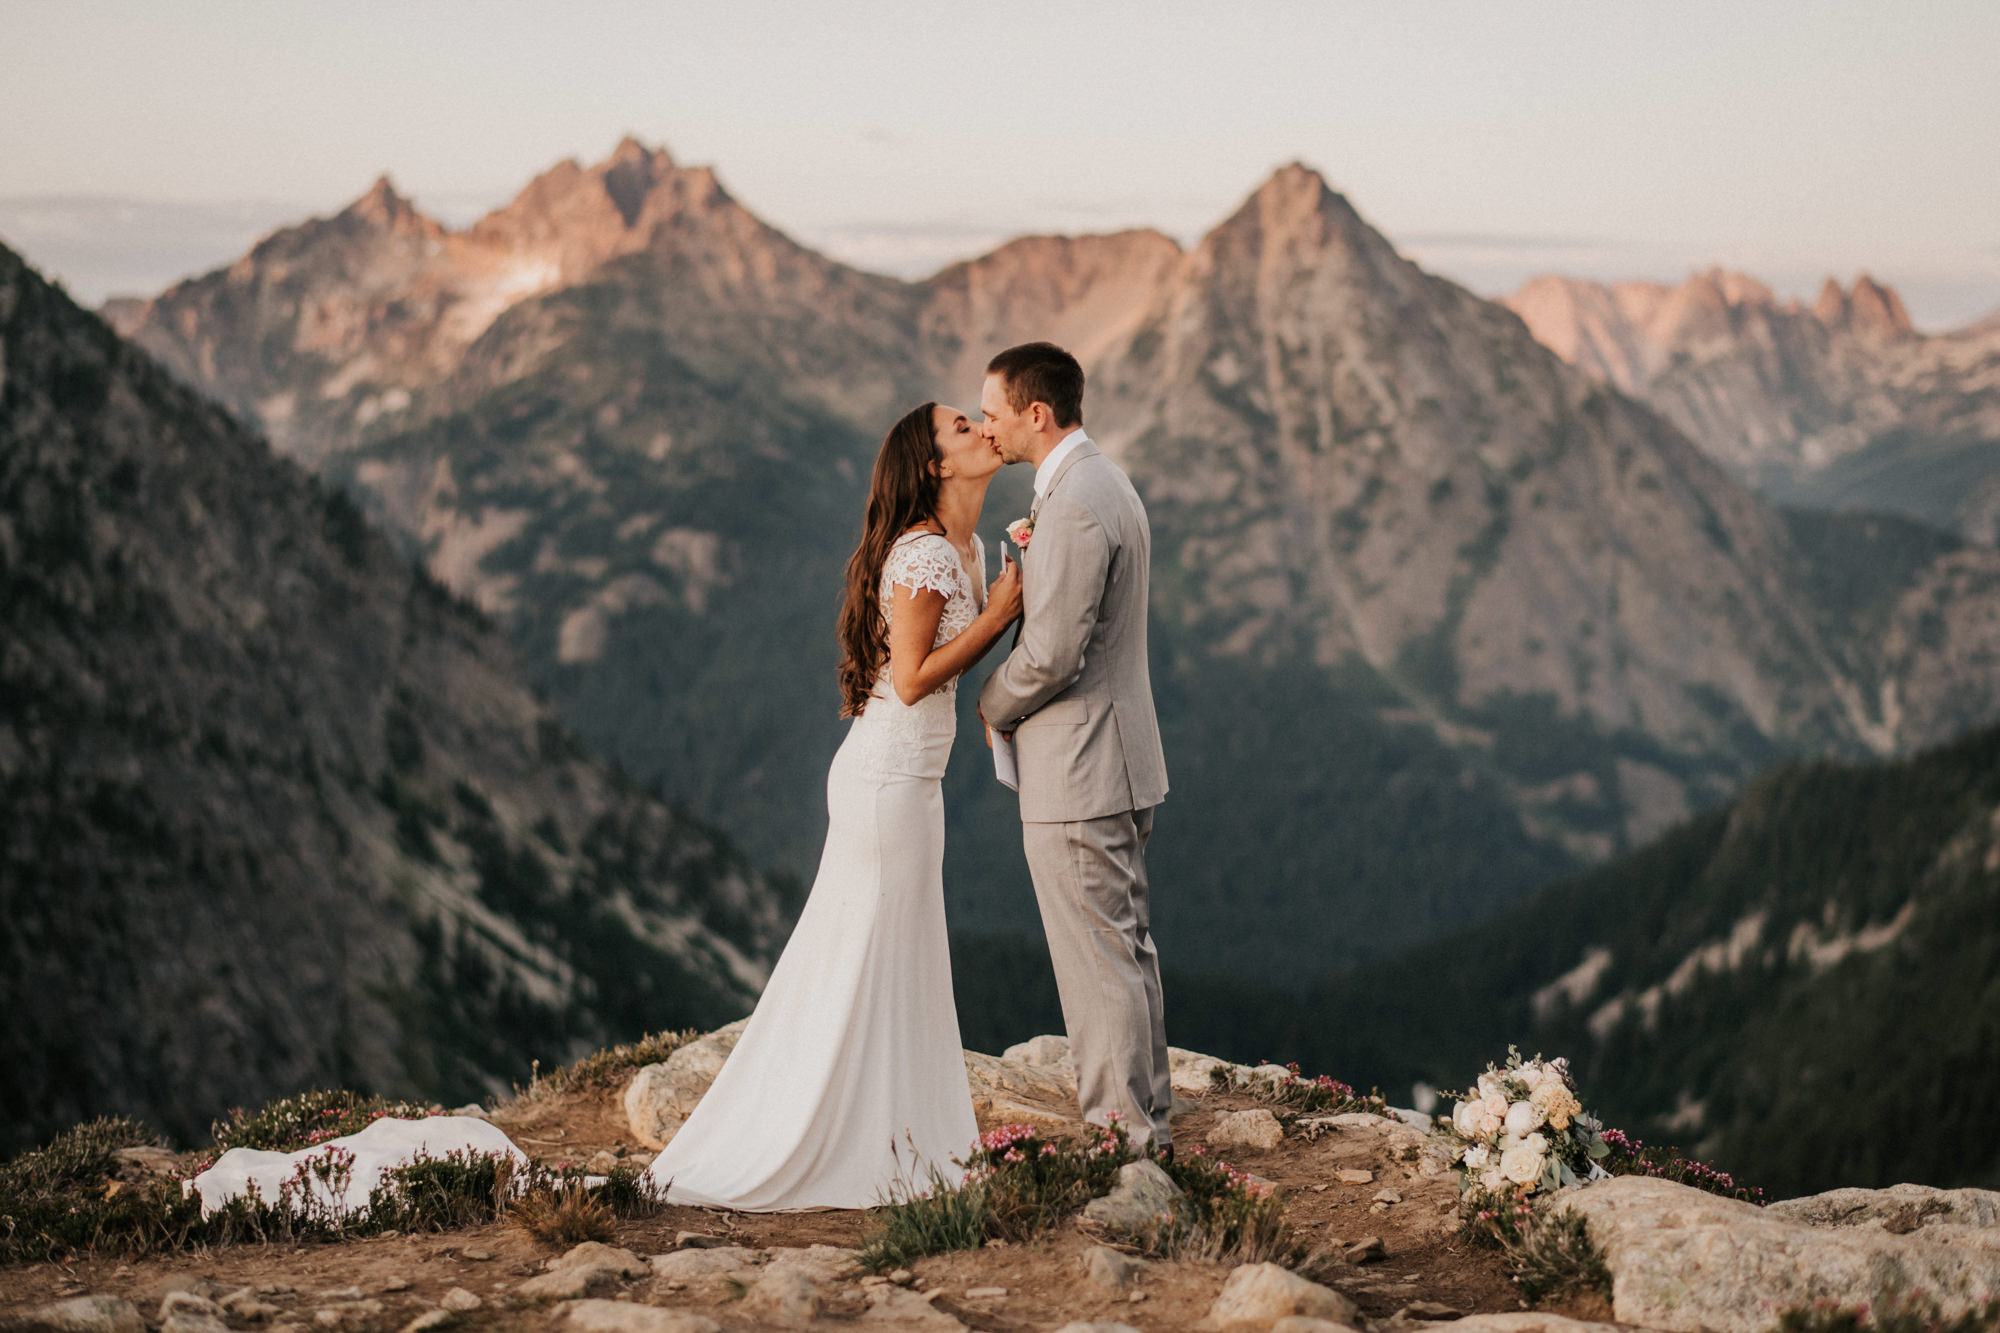 Sweet kiss, bride in lace dress and groom in grey suit- photo by Nick + Danee